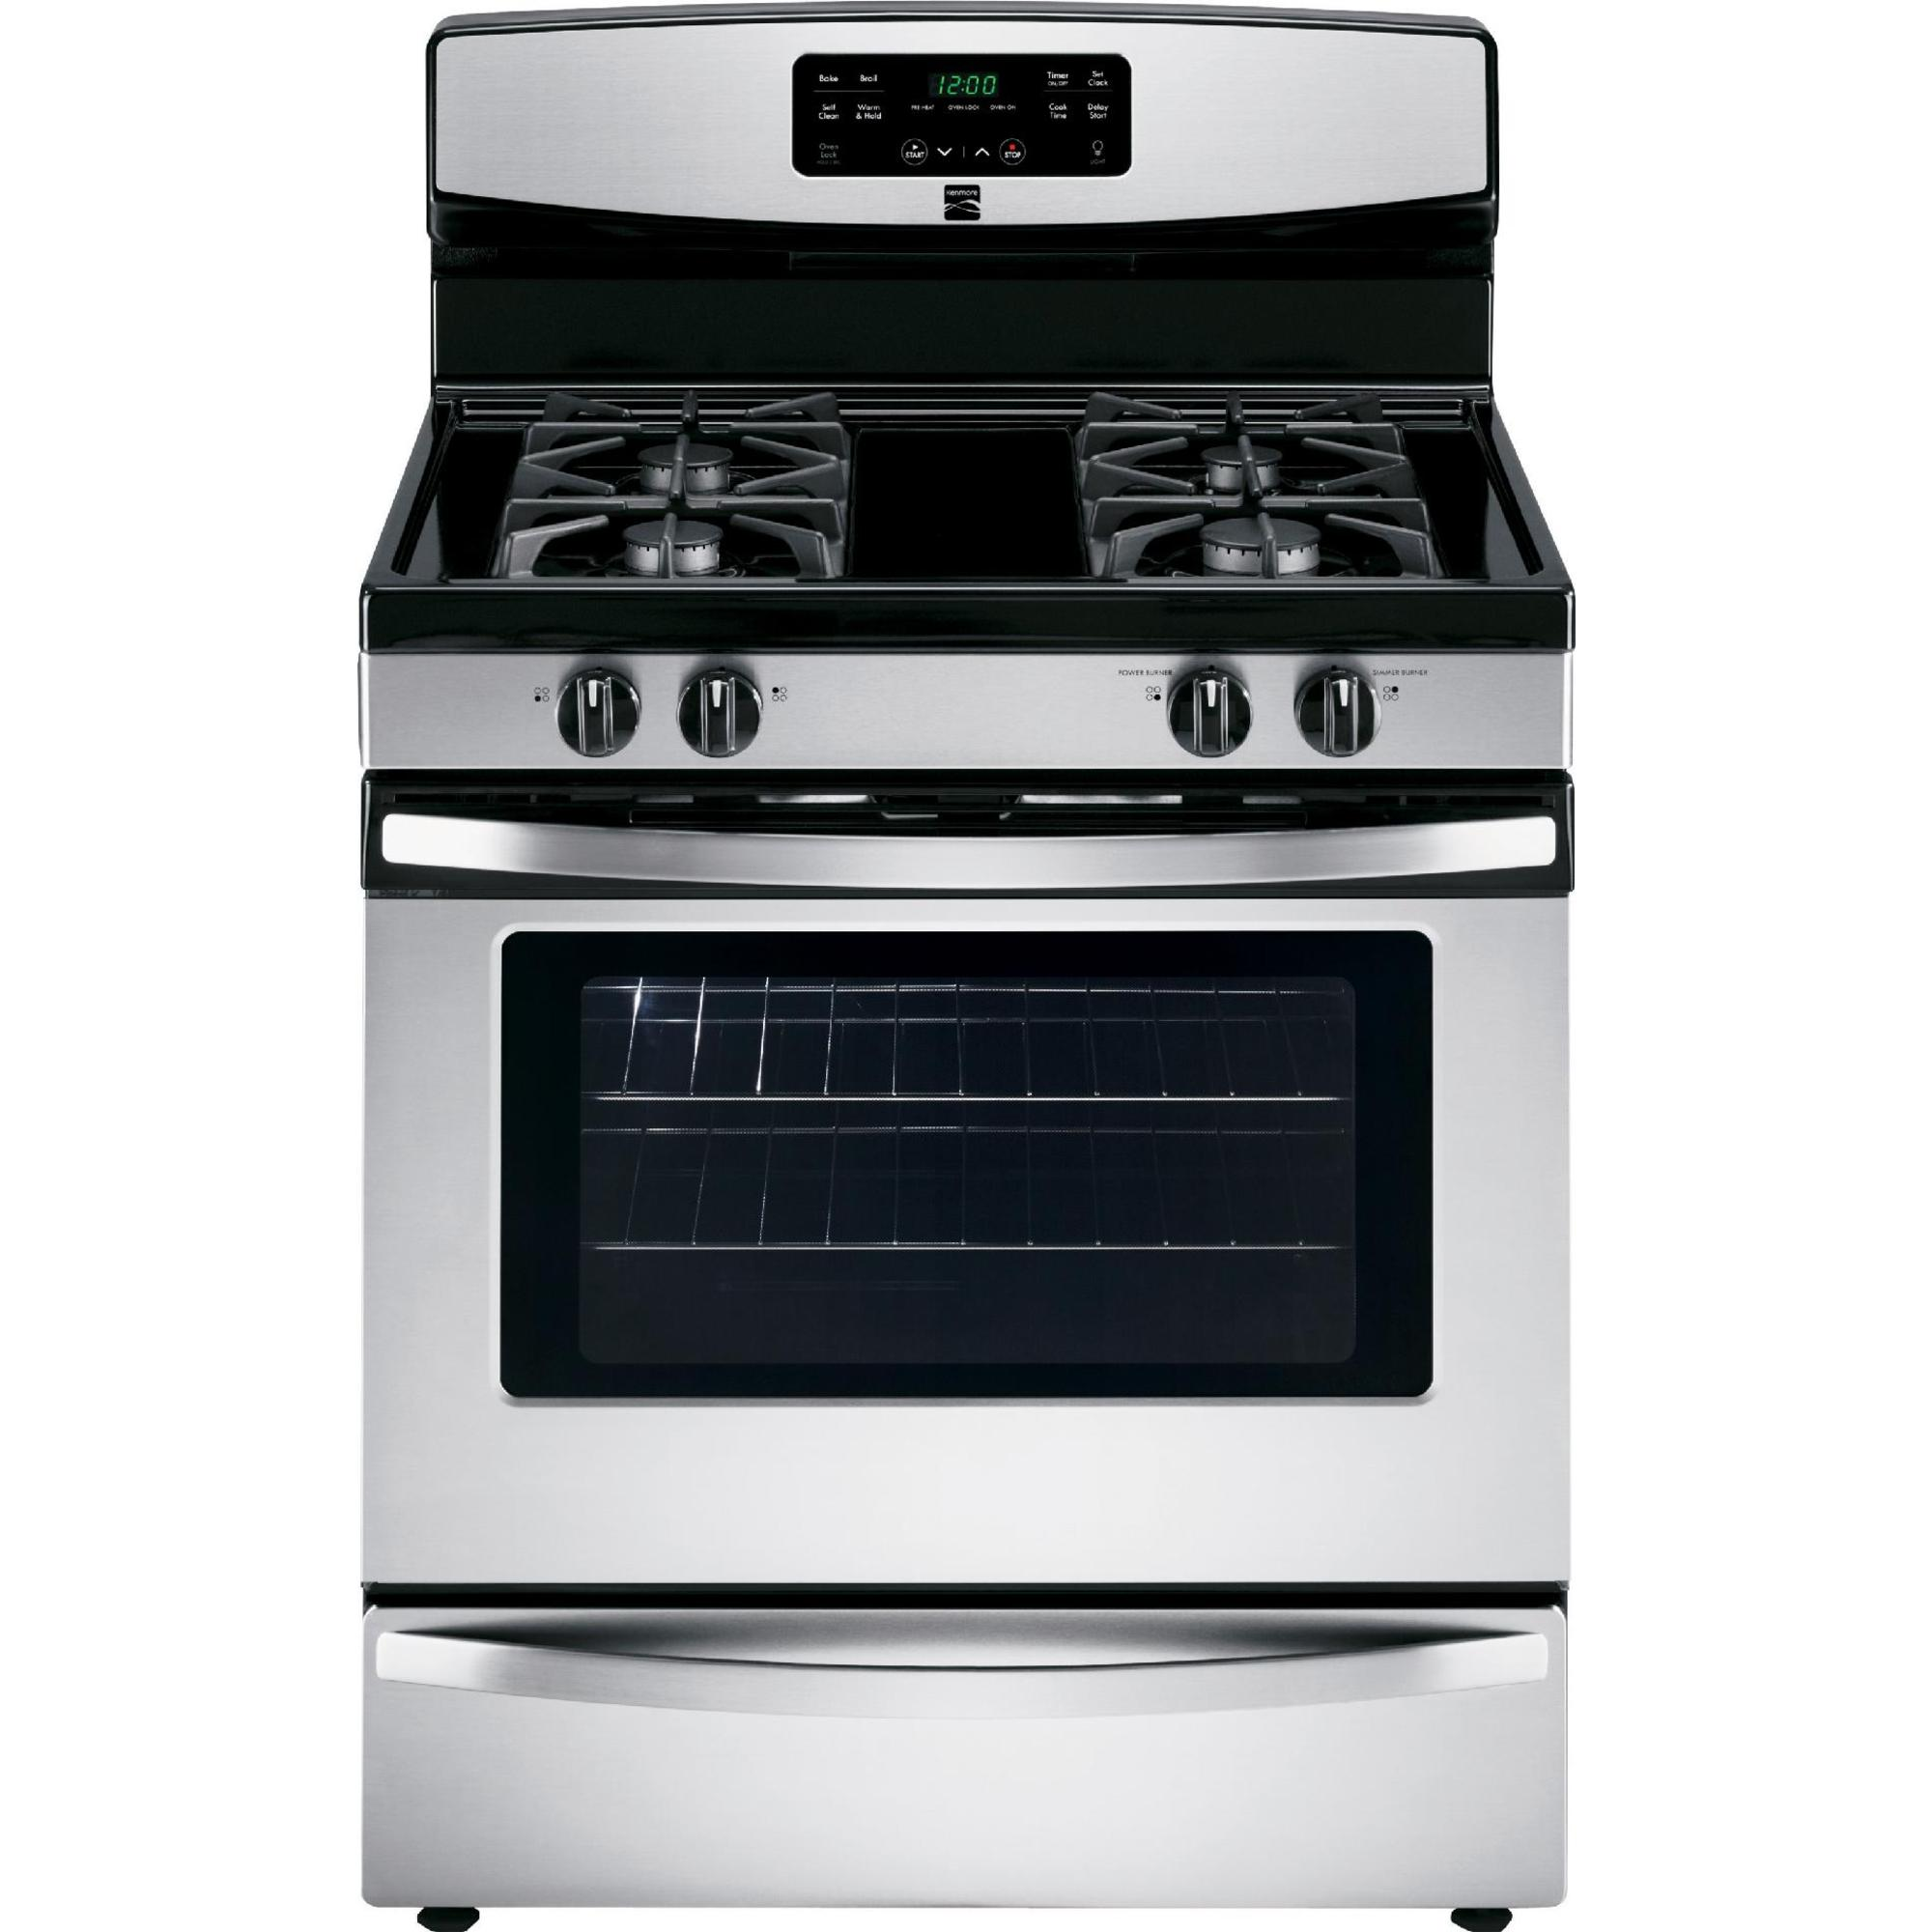 74033-5-0-cu-ft-Freestanding-Gas-Range-Stainless-Steel